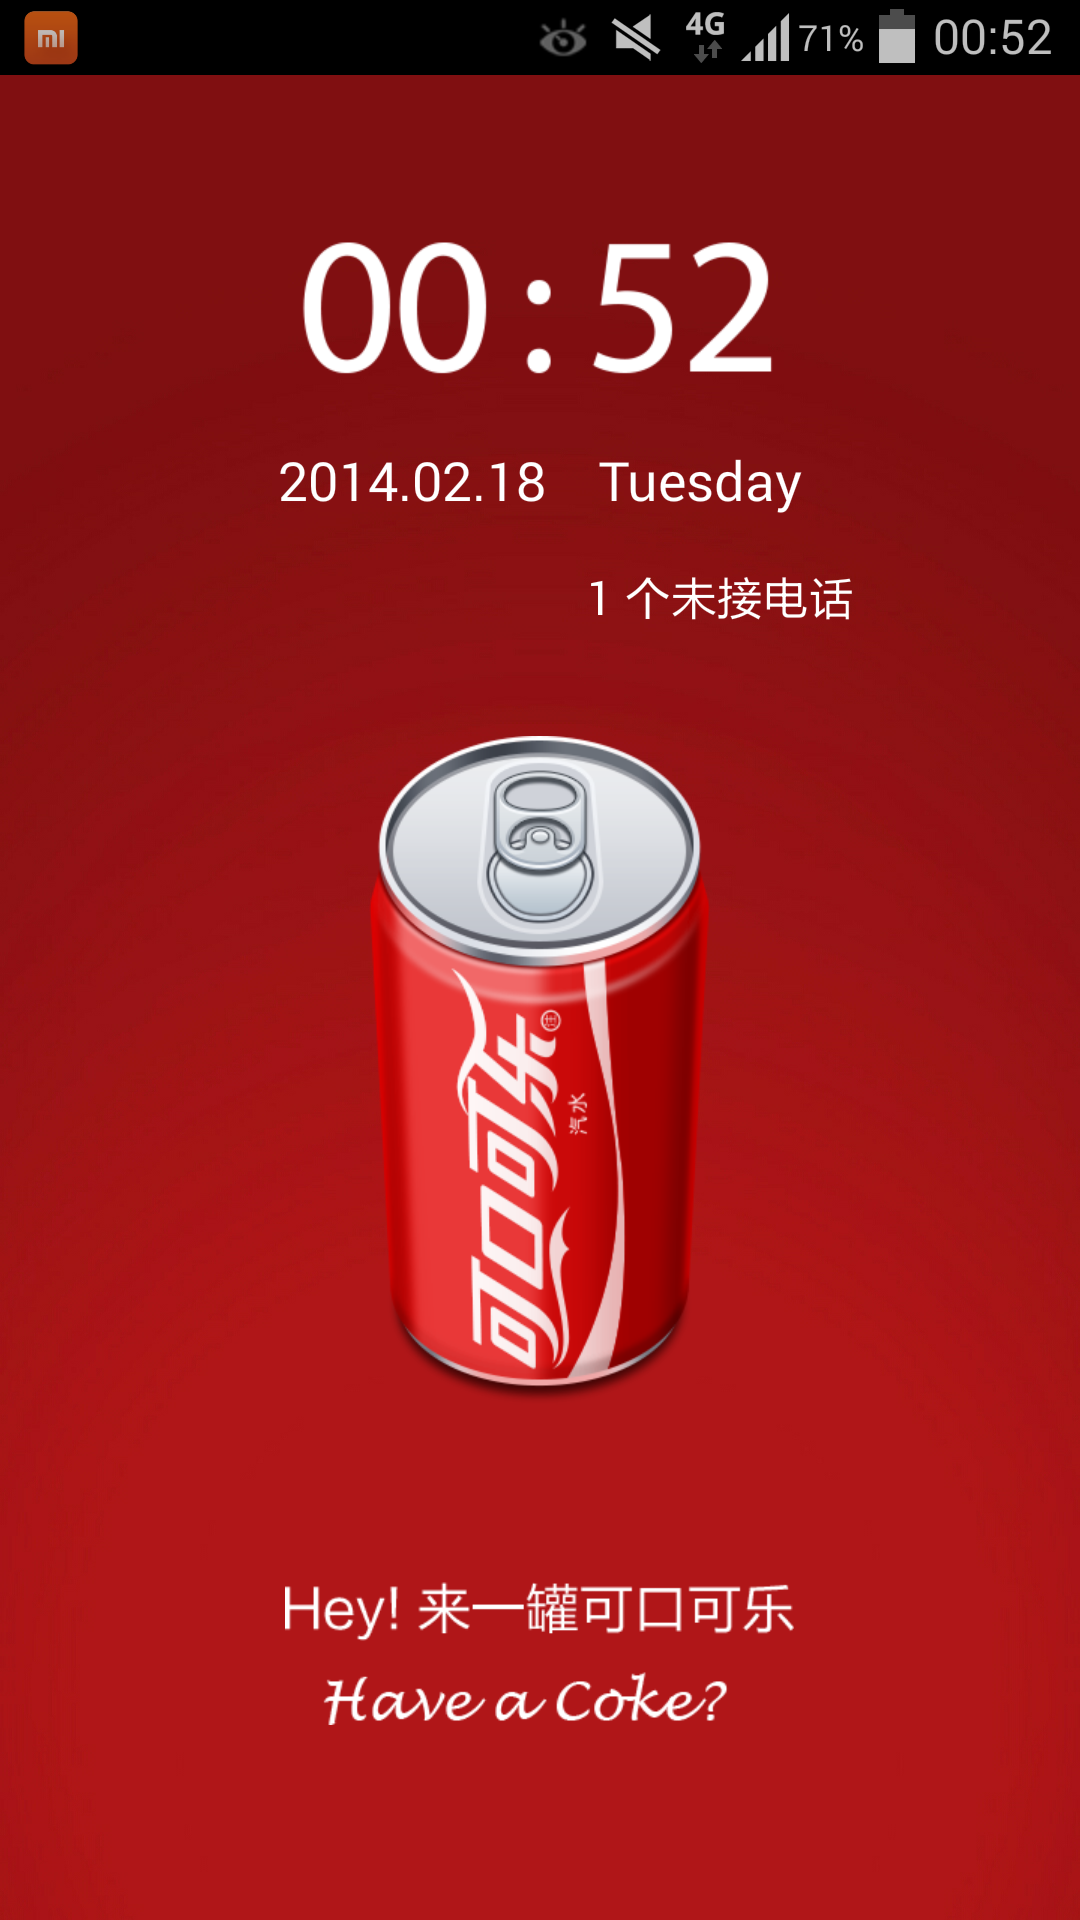 Samsung Galaxy Note 3 running on the MIUI Home launcher with Coca Cola theme.